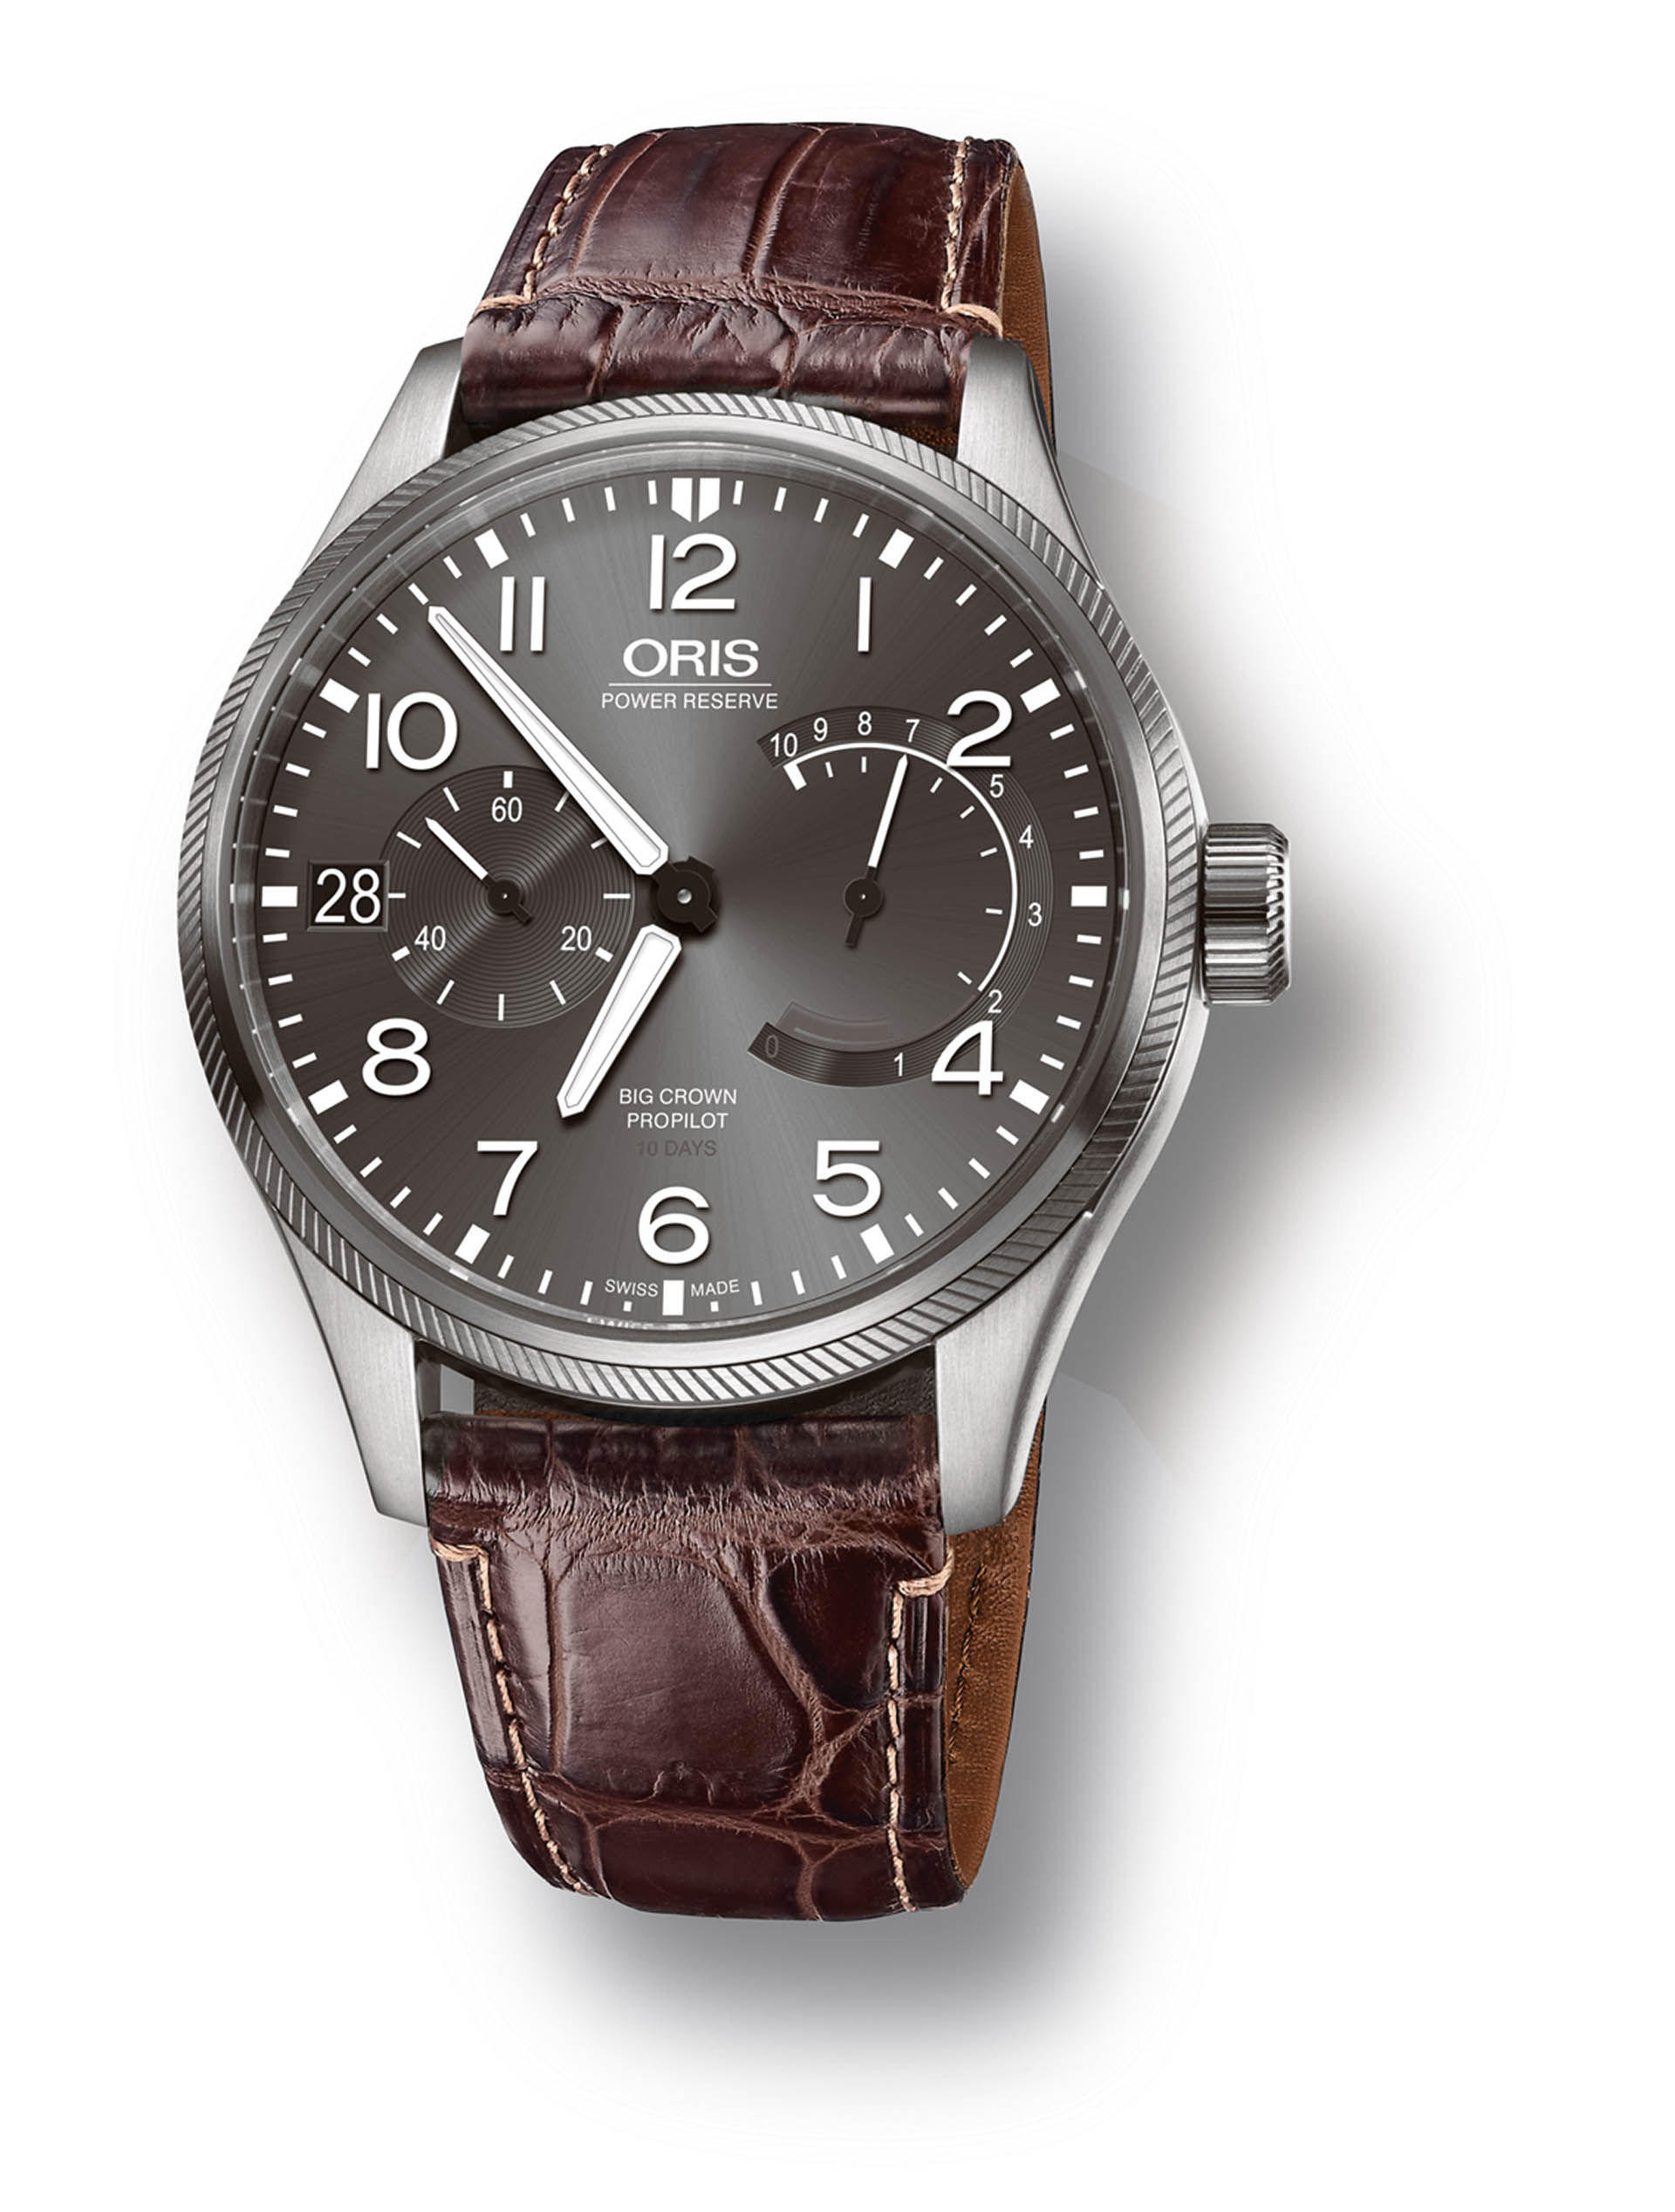 Oris Big Crown Pro Pilot Kaliber 111